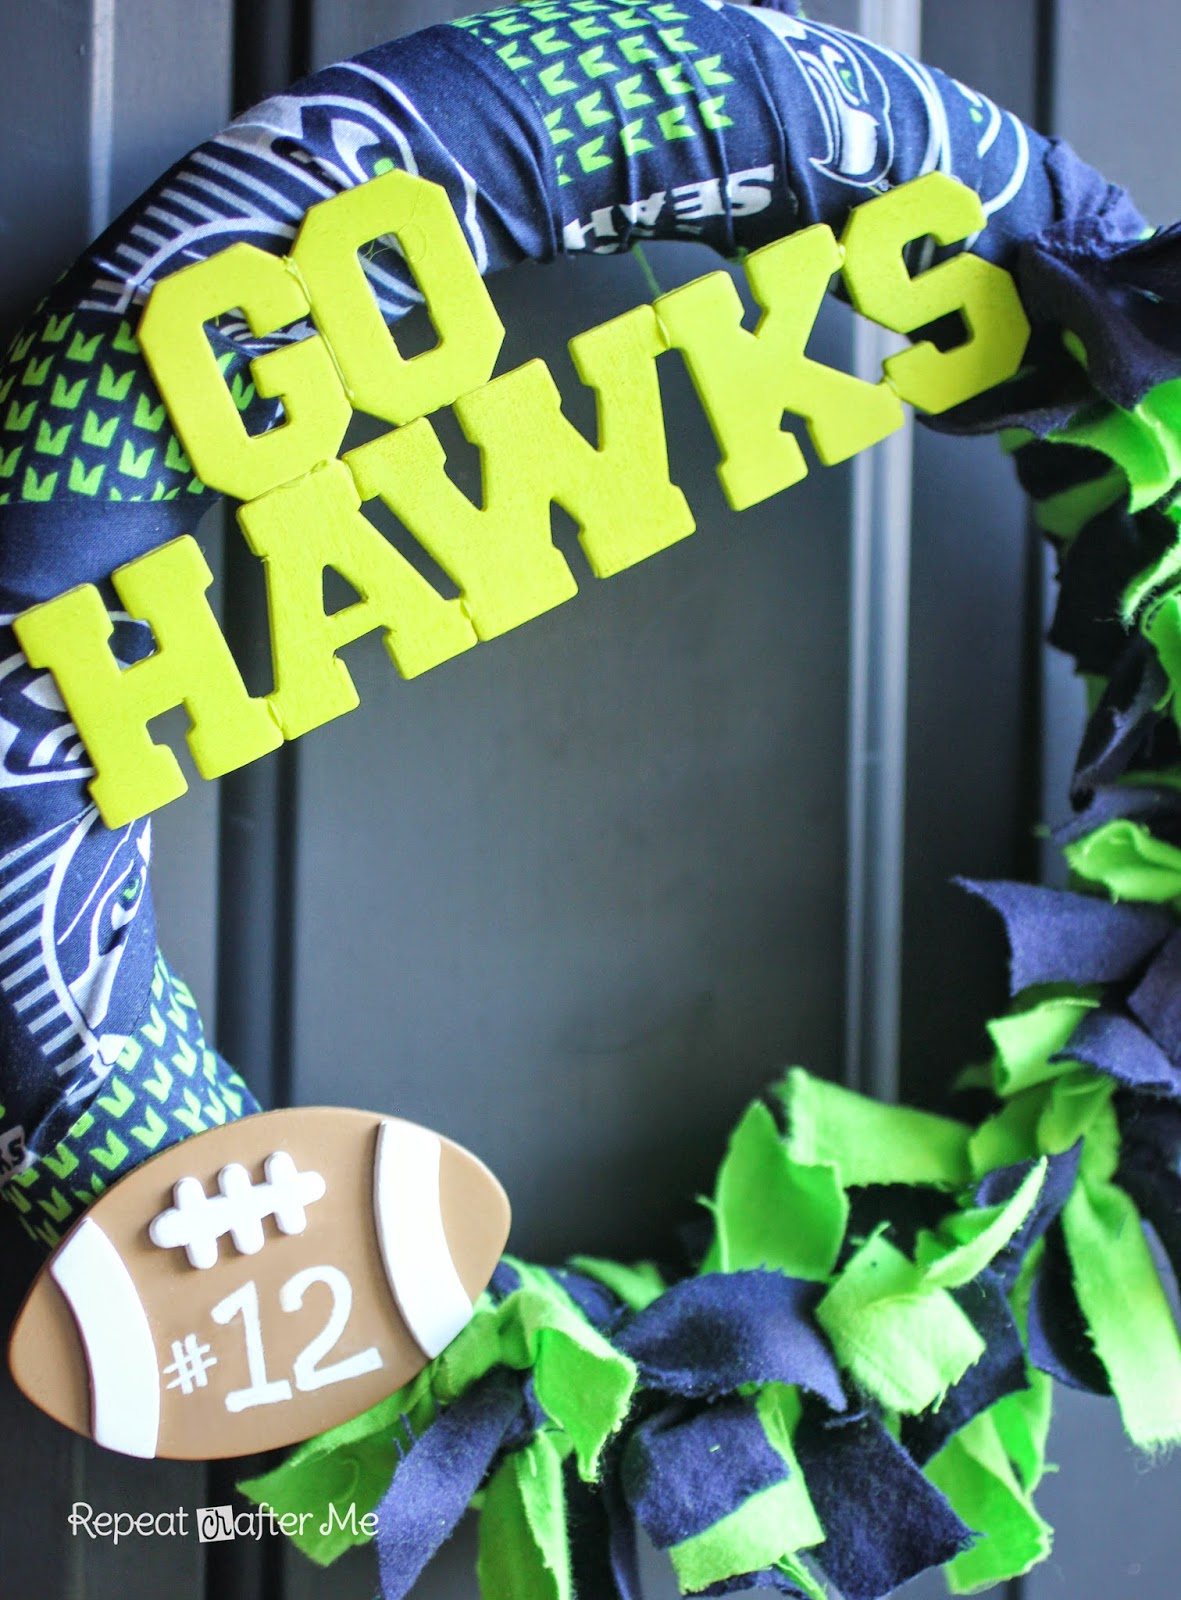 Repeat crafter me football team wreath